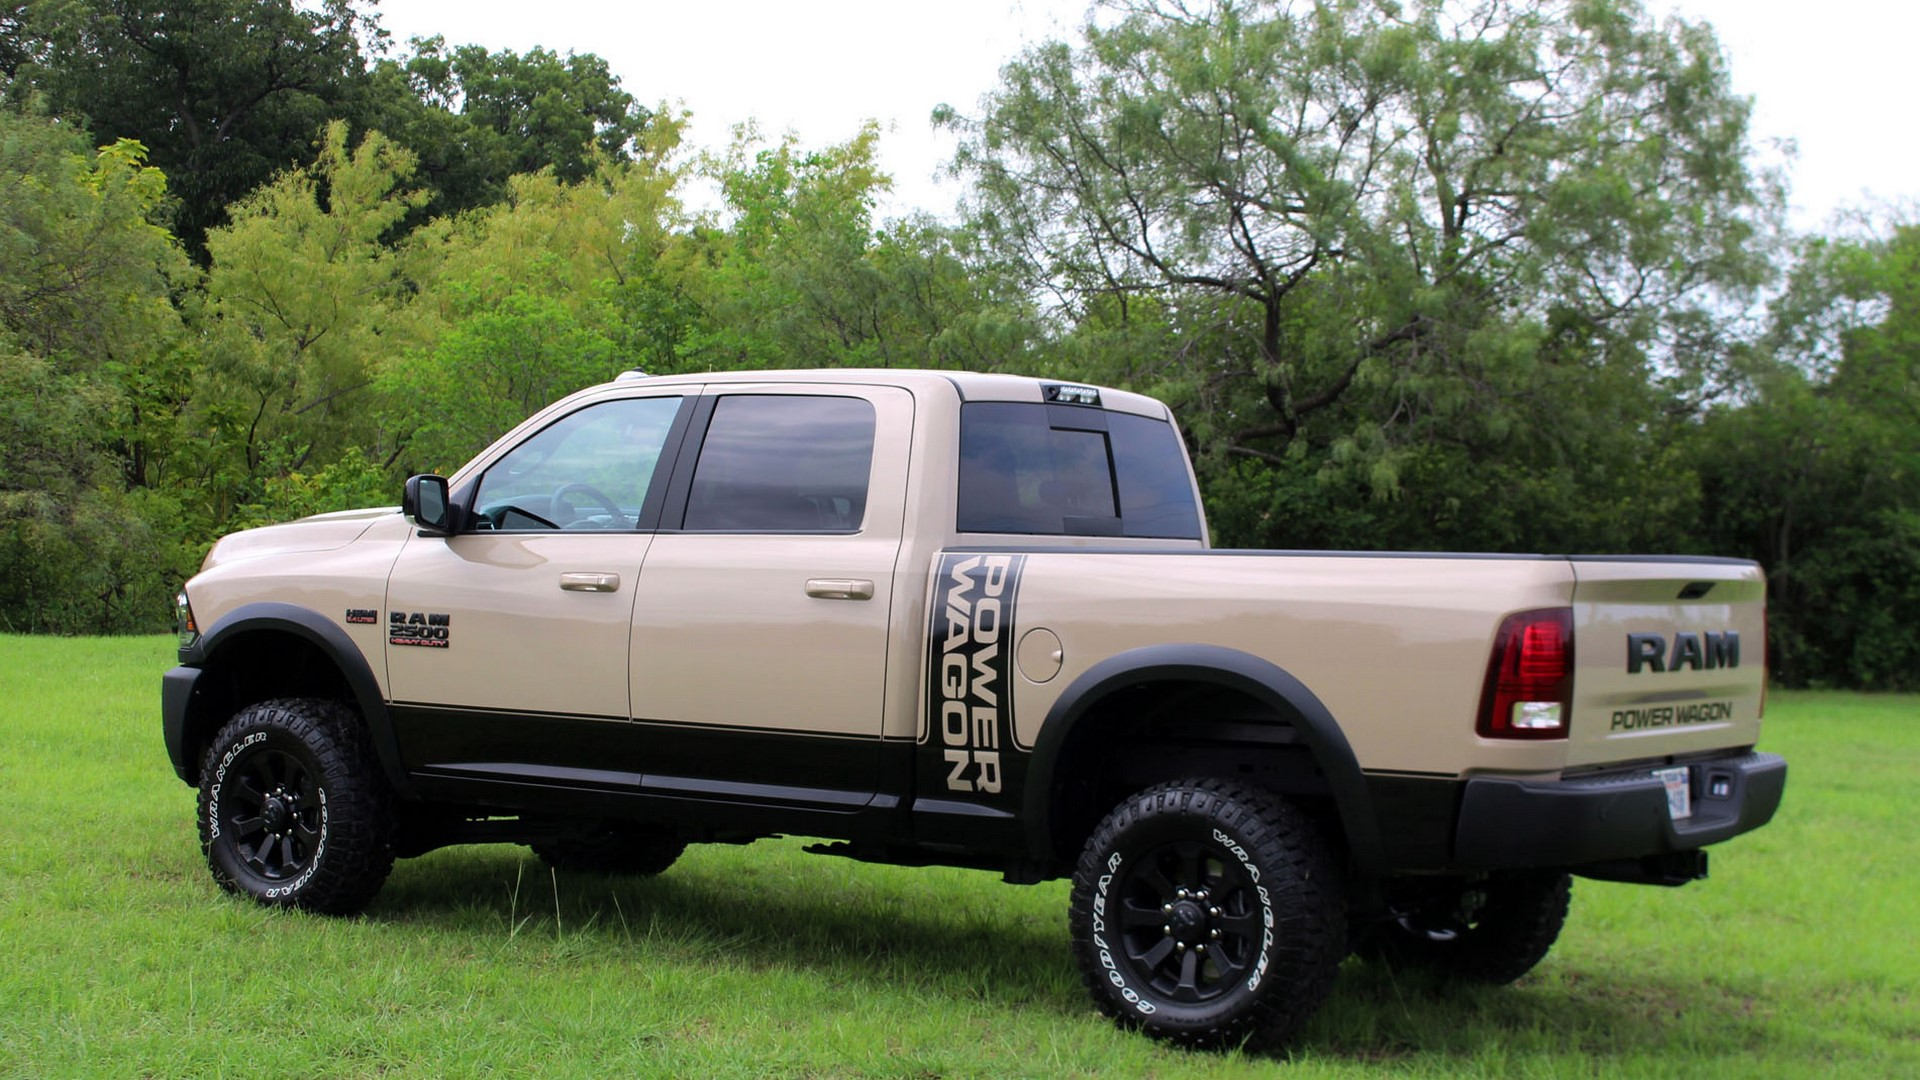 ram-2500-powerwagon-profile-3-1